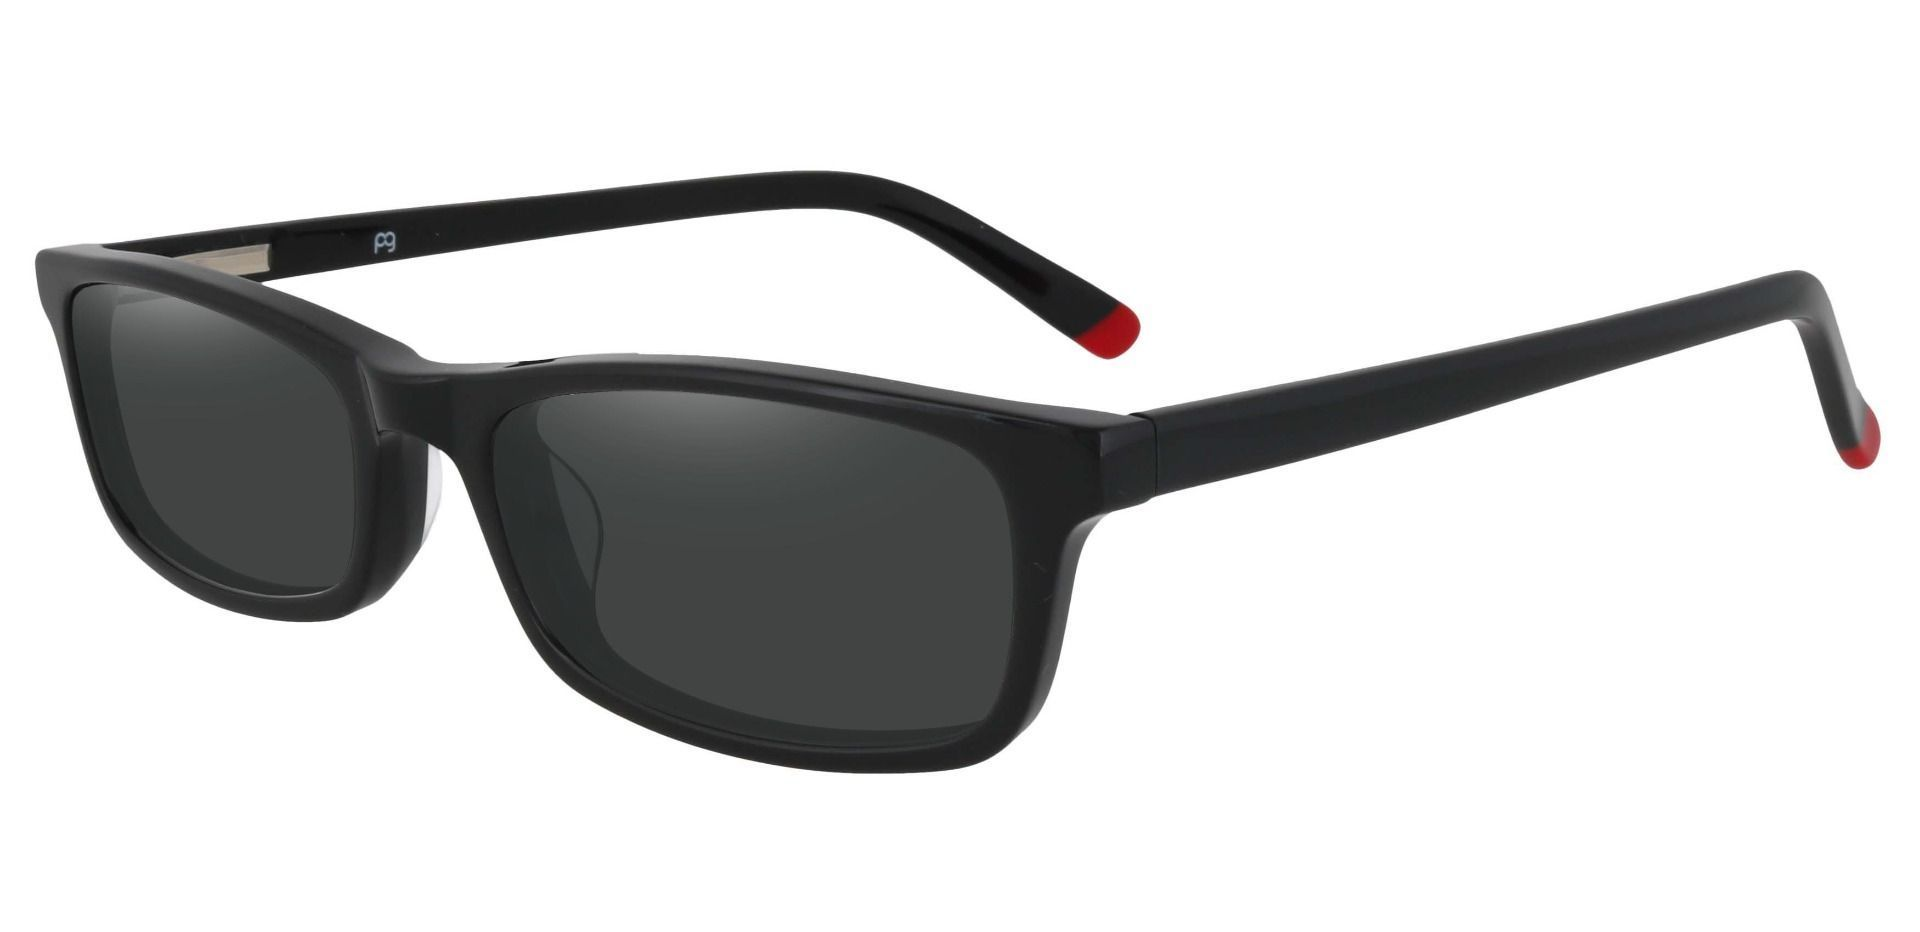 Palisades Rectangle Non-Rx Sunglasses - Black Frame With Gray Lenses